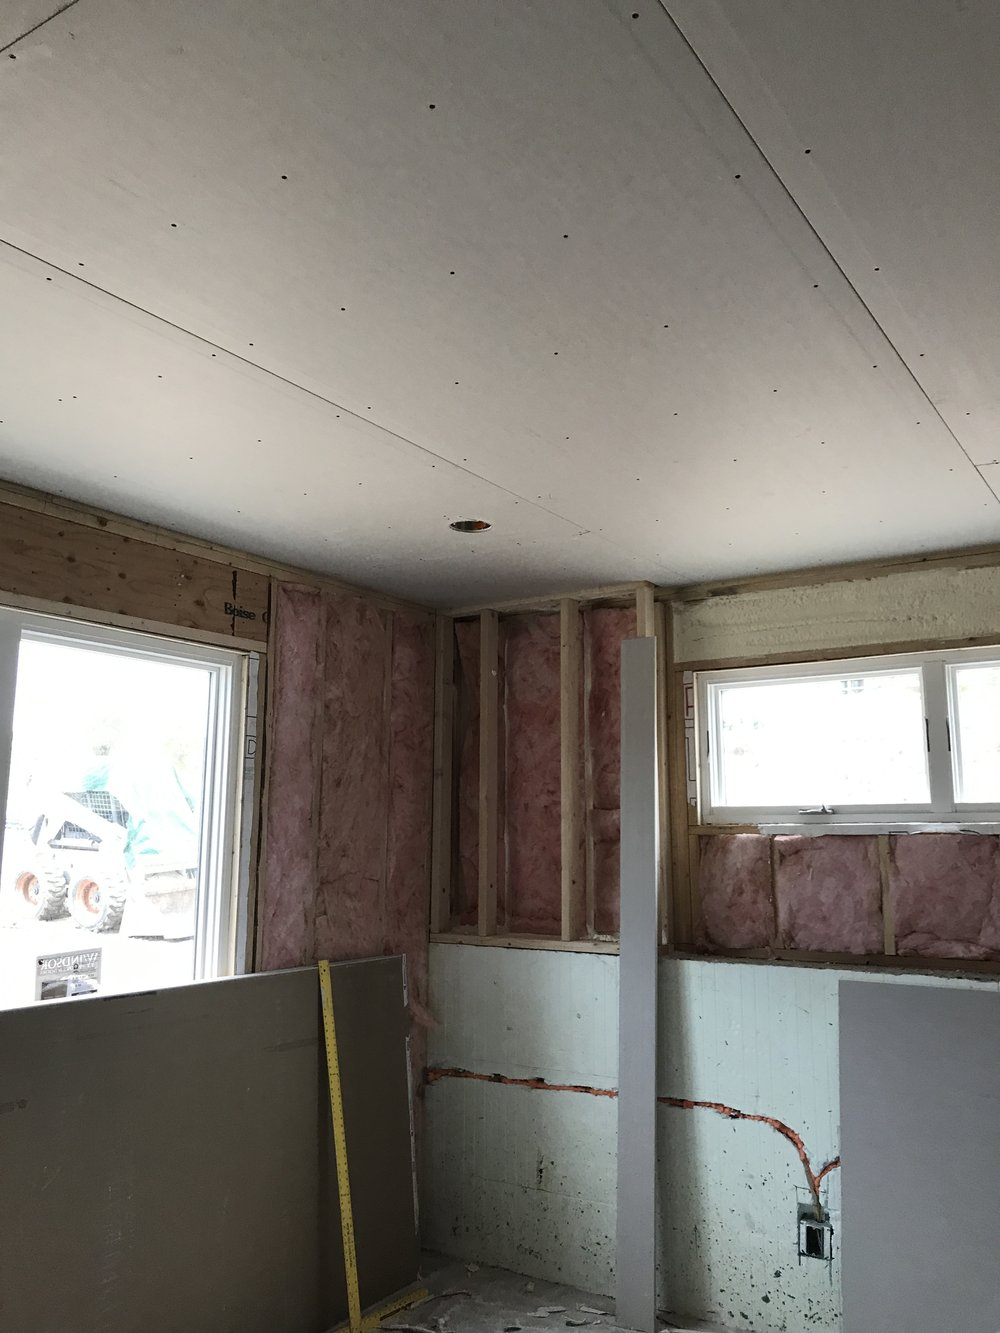 July 11 - Drywall starting